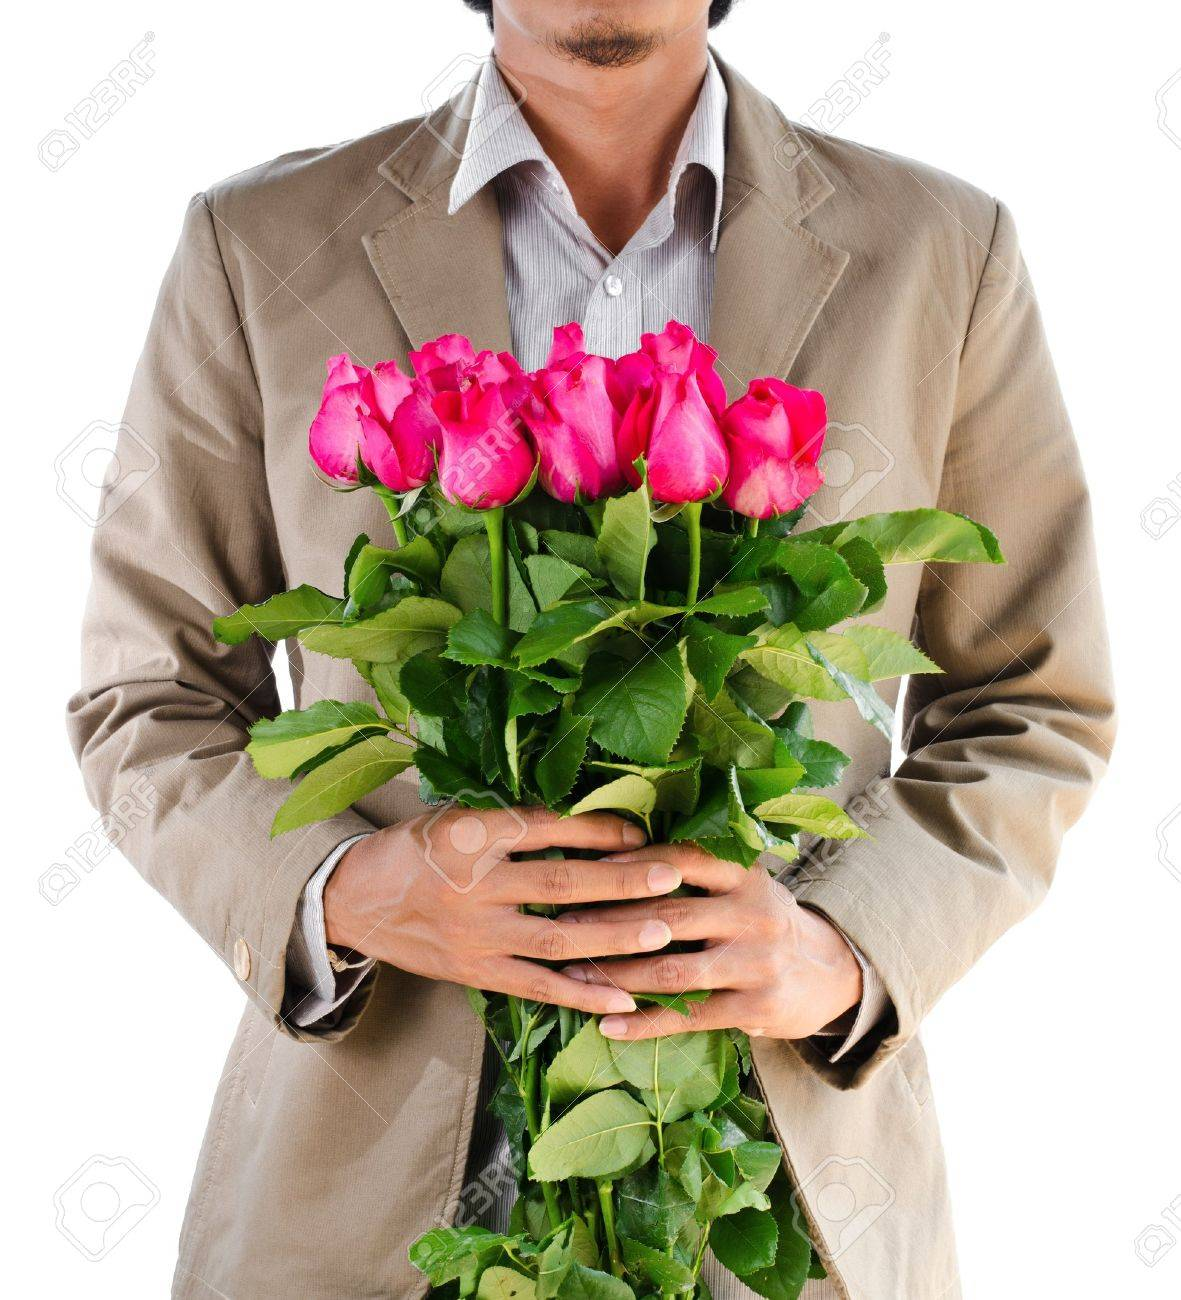 Man in suit holding a roses on white background. Stock Photo - 17452913